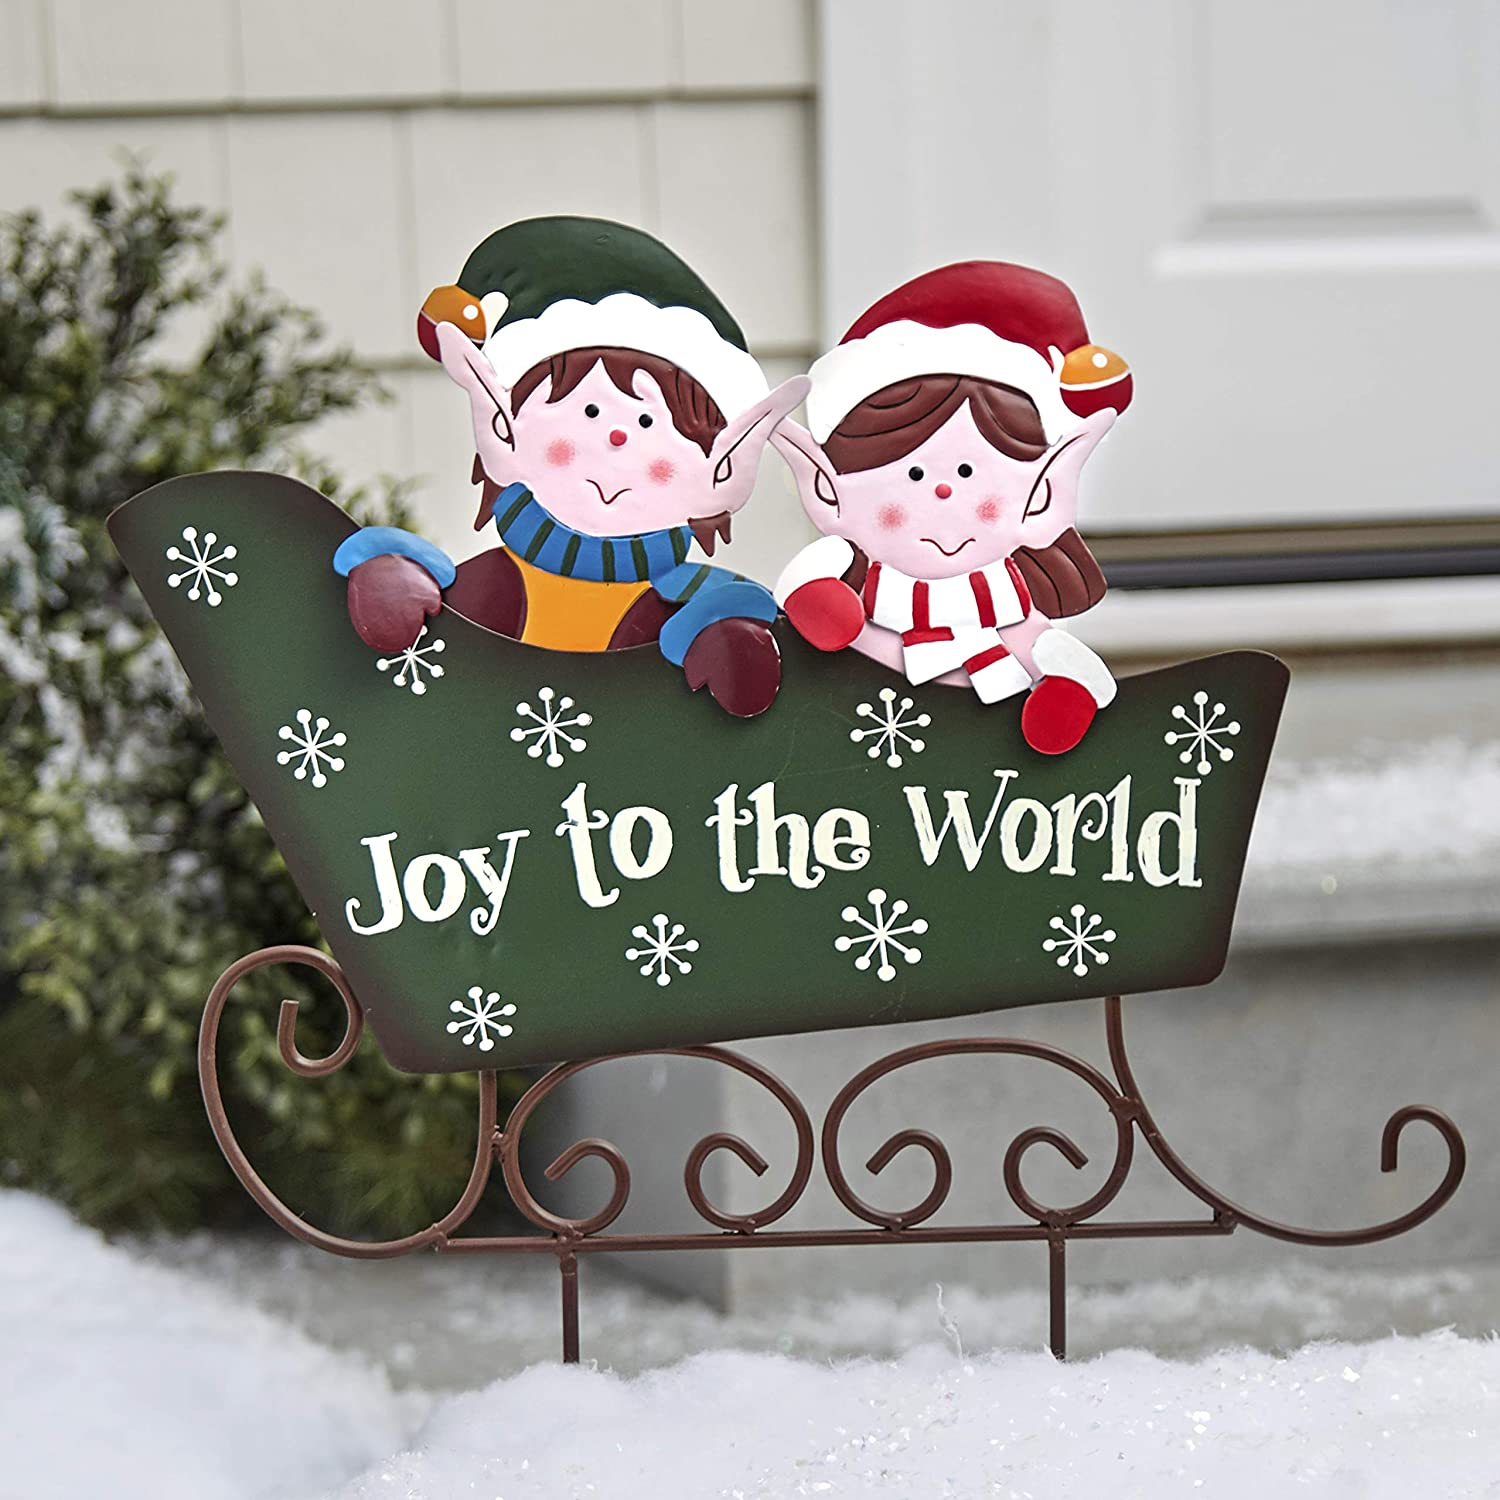 Metal Sleigh Stake For Christmas With Retro Elves Joy To The World Green Garden Outdoor